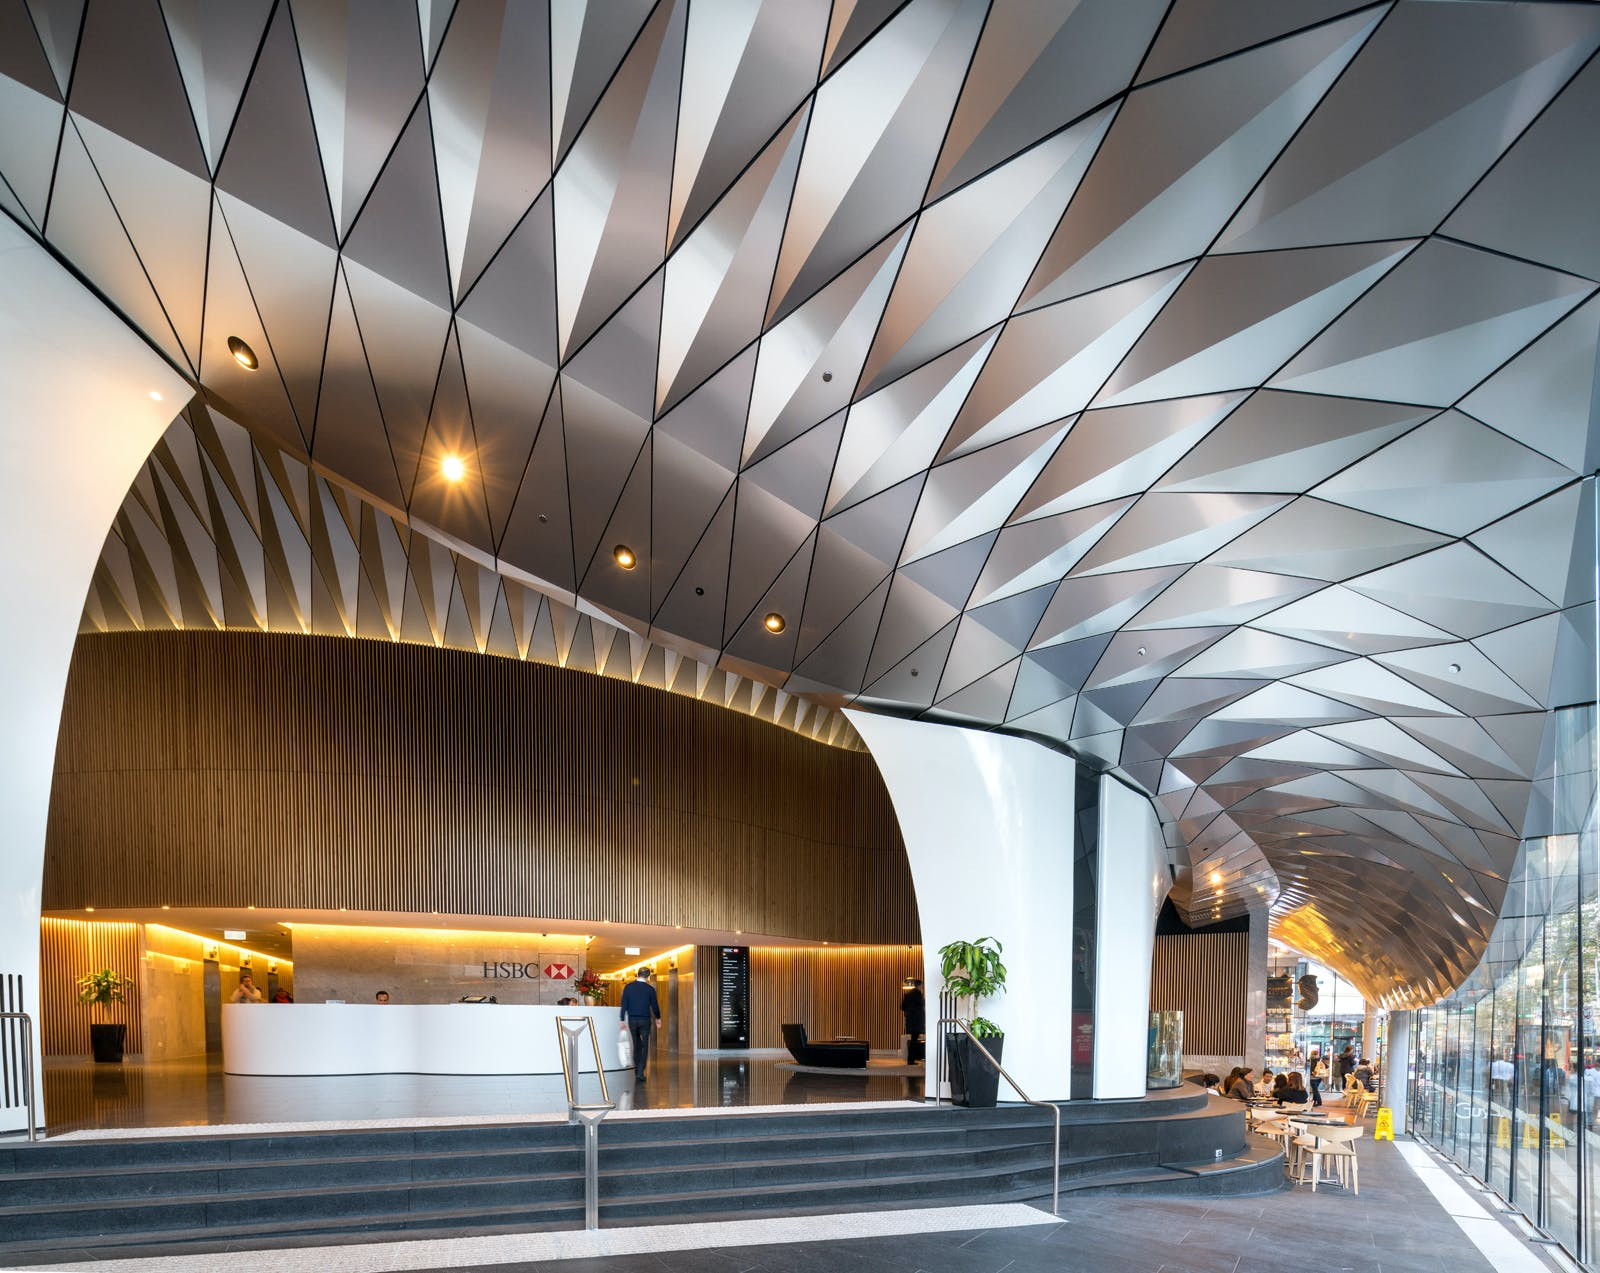 Architects Design Incredible Serpentine Awning With